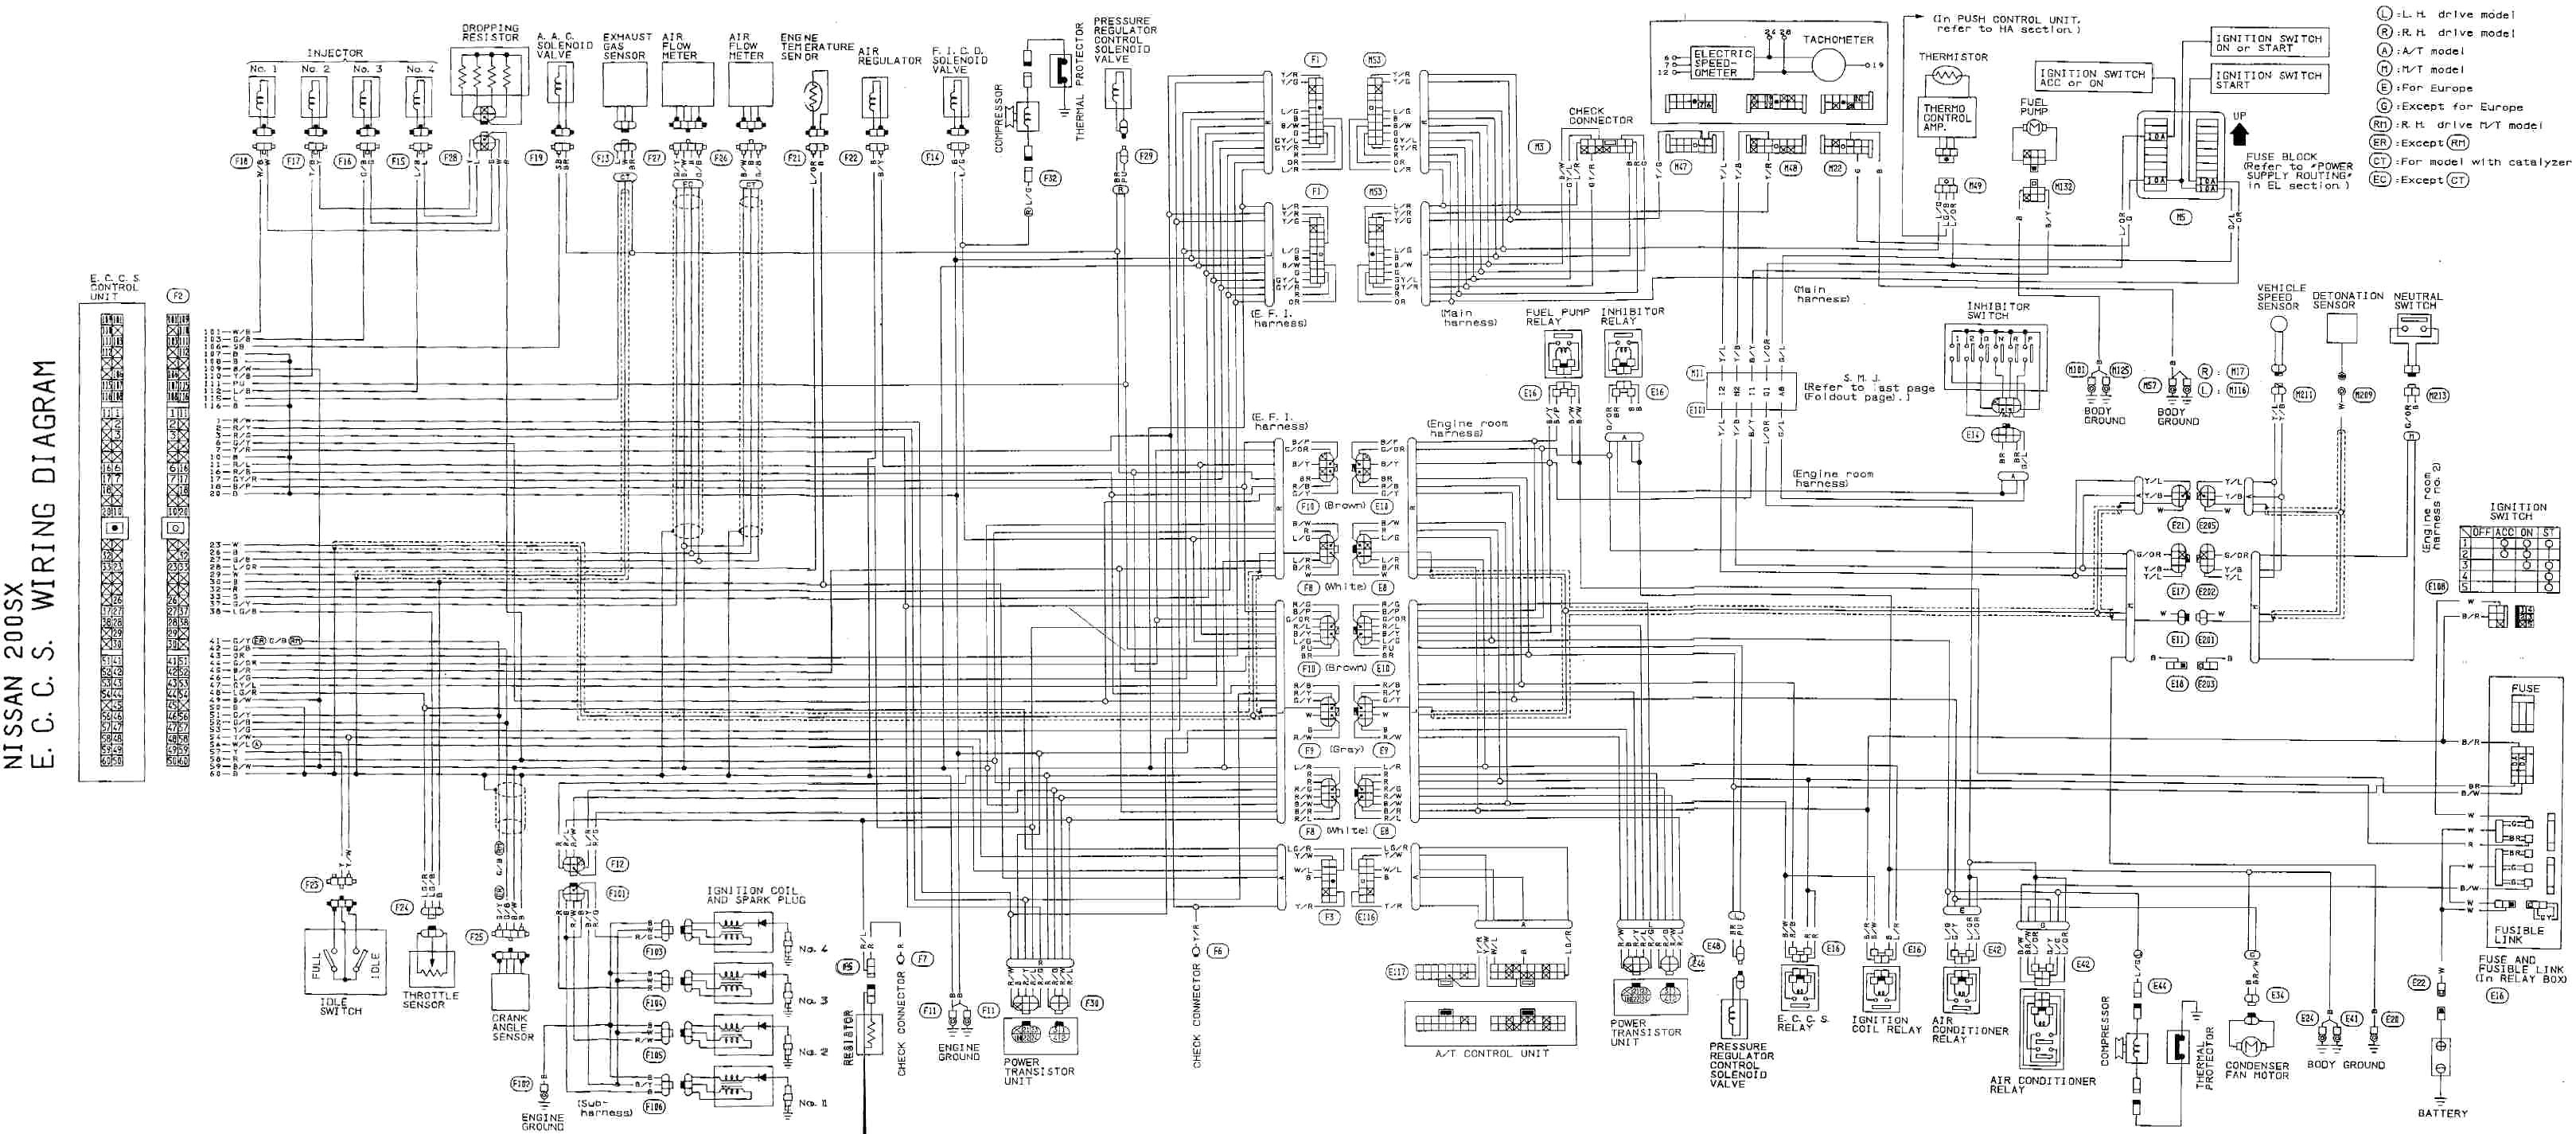 Nissan Almera Engine Diagram Nissan Wiring Diagrams Of Nissan Almera Engine Diagram